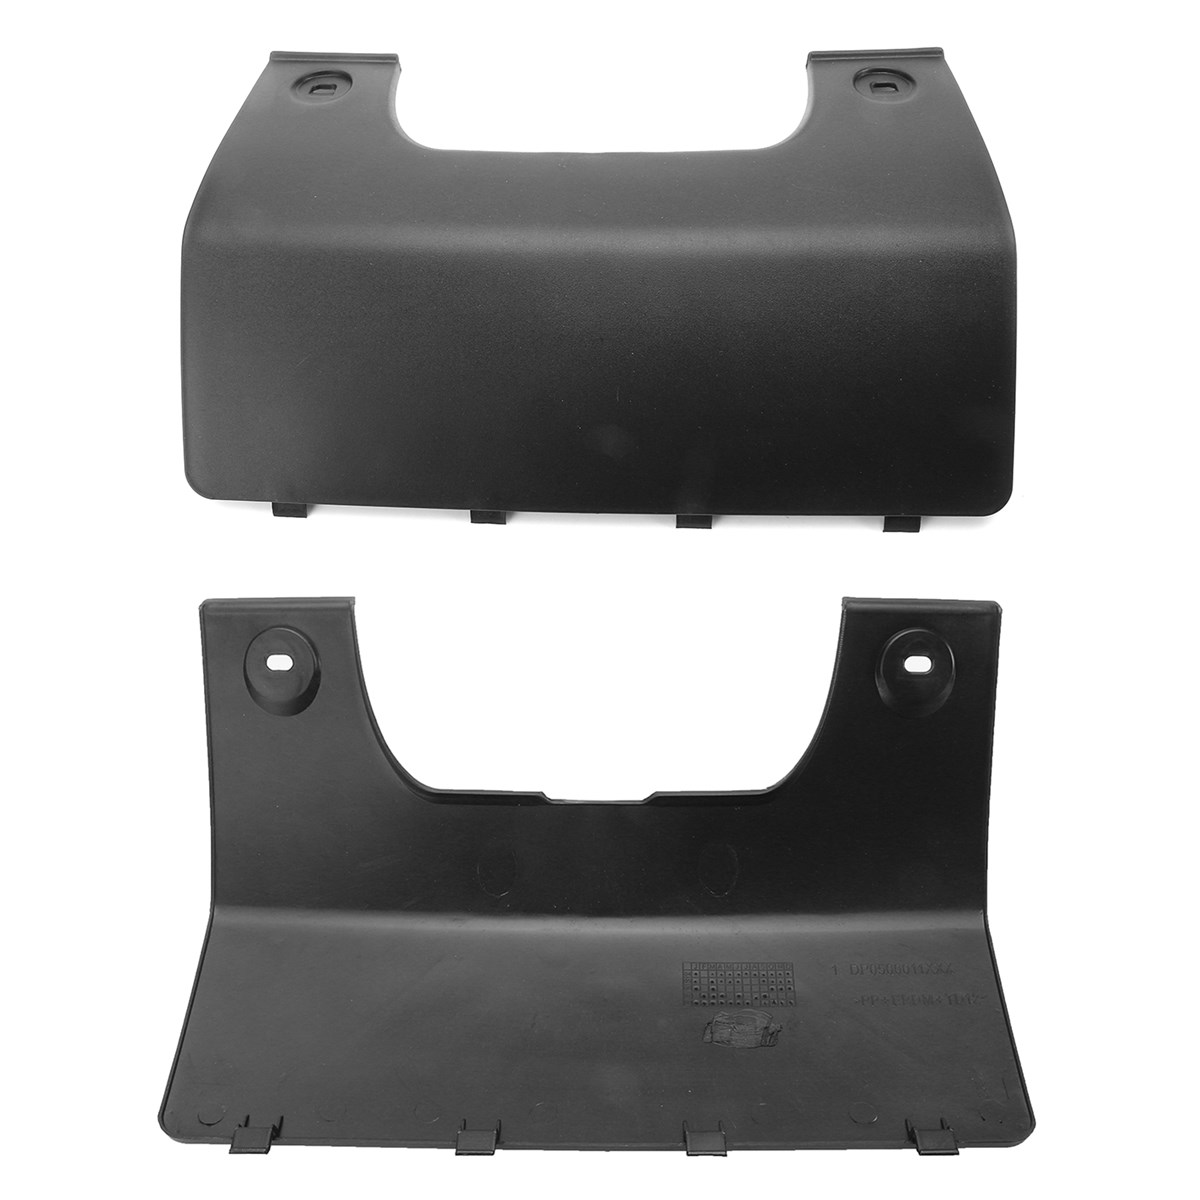 Land Rover Discovery 3 /& 4 New Rear Bumper Towing Eye Cover DPO500011PCL